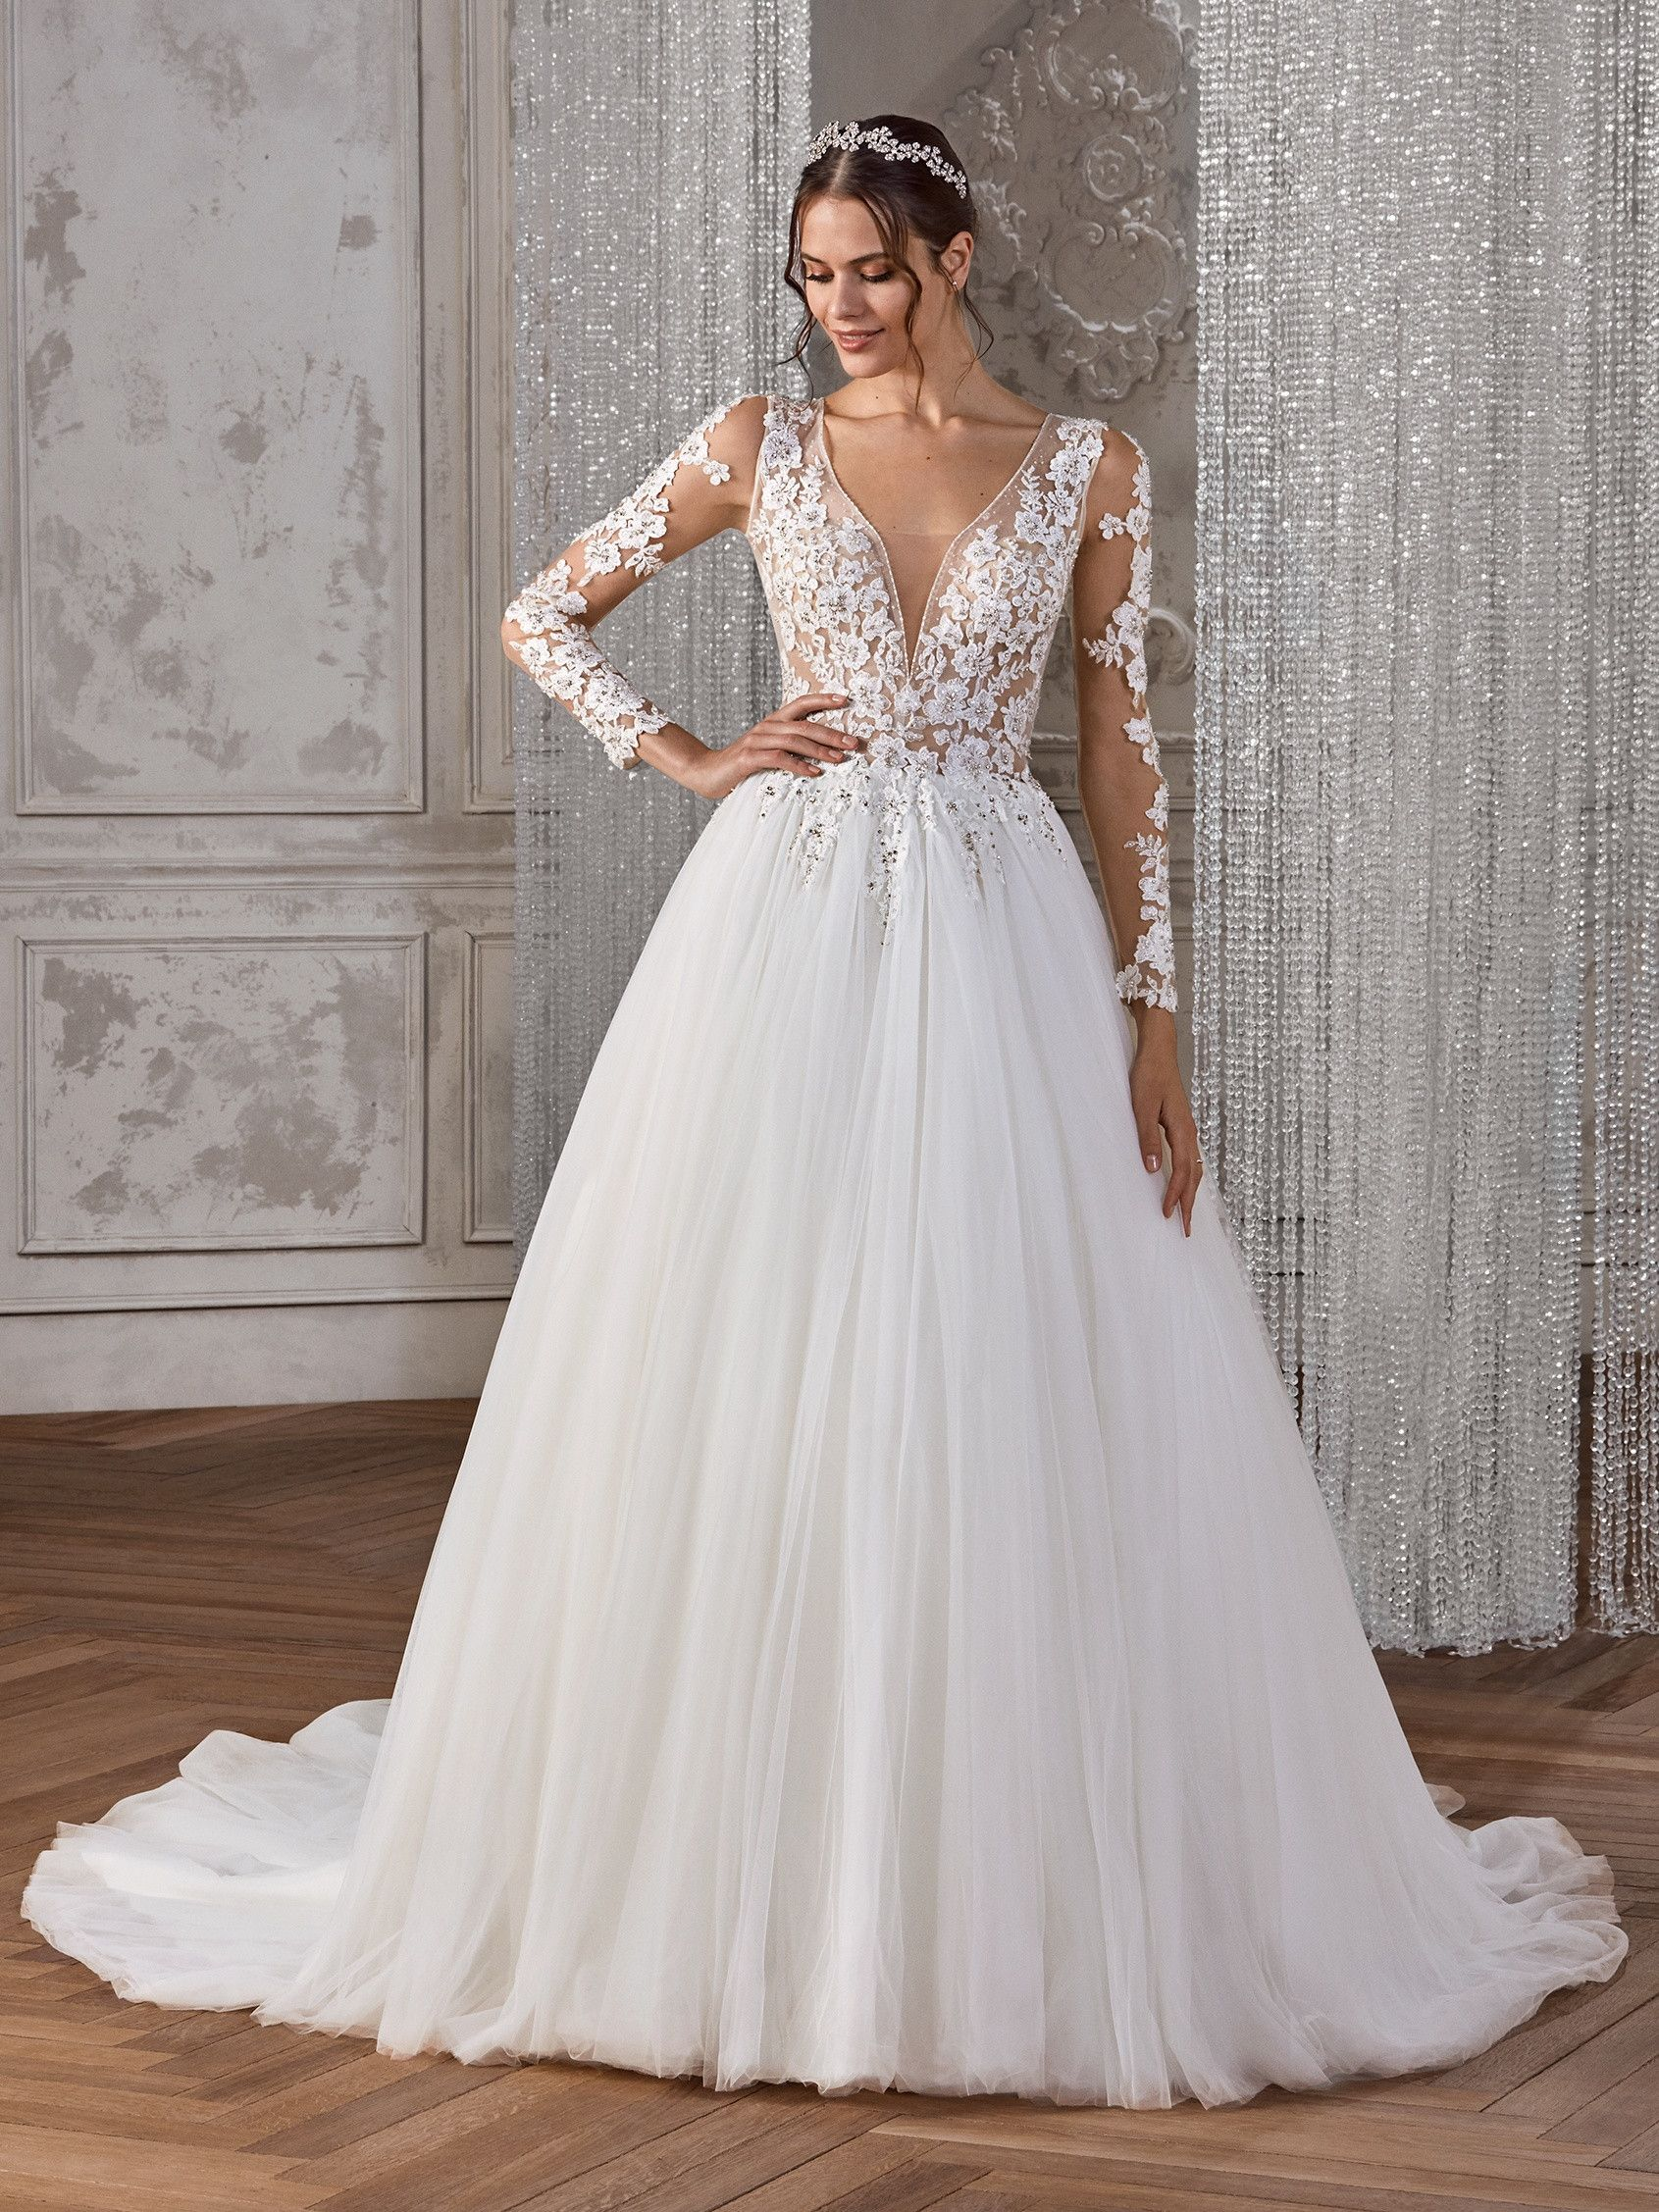 Wedding Dress Boutiques With Long Gown For Wedding